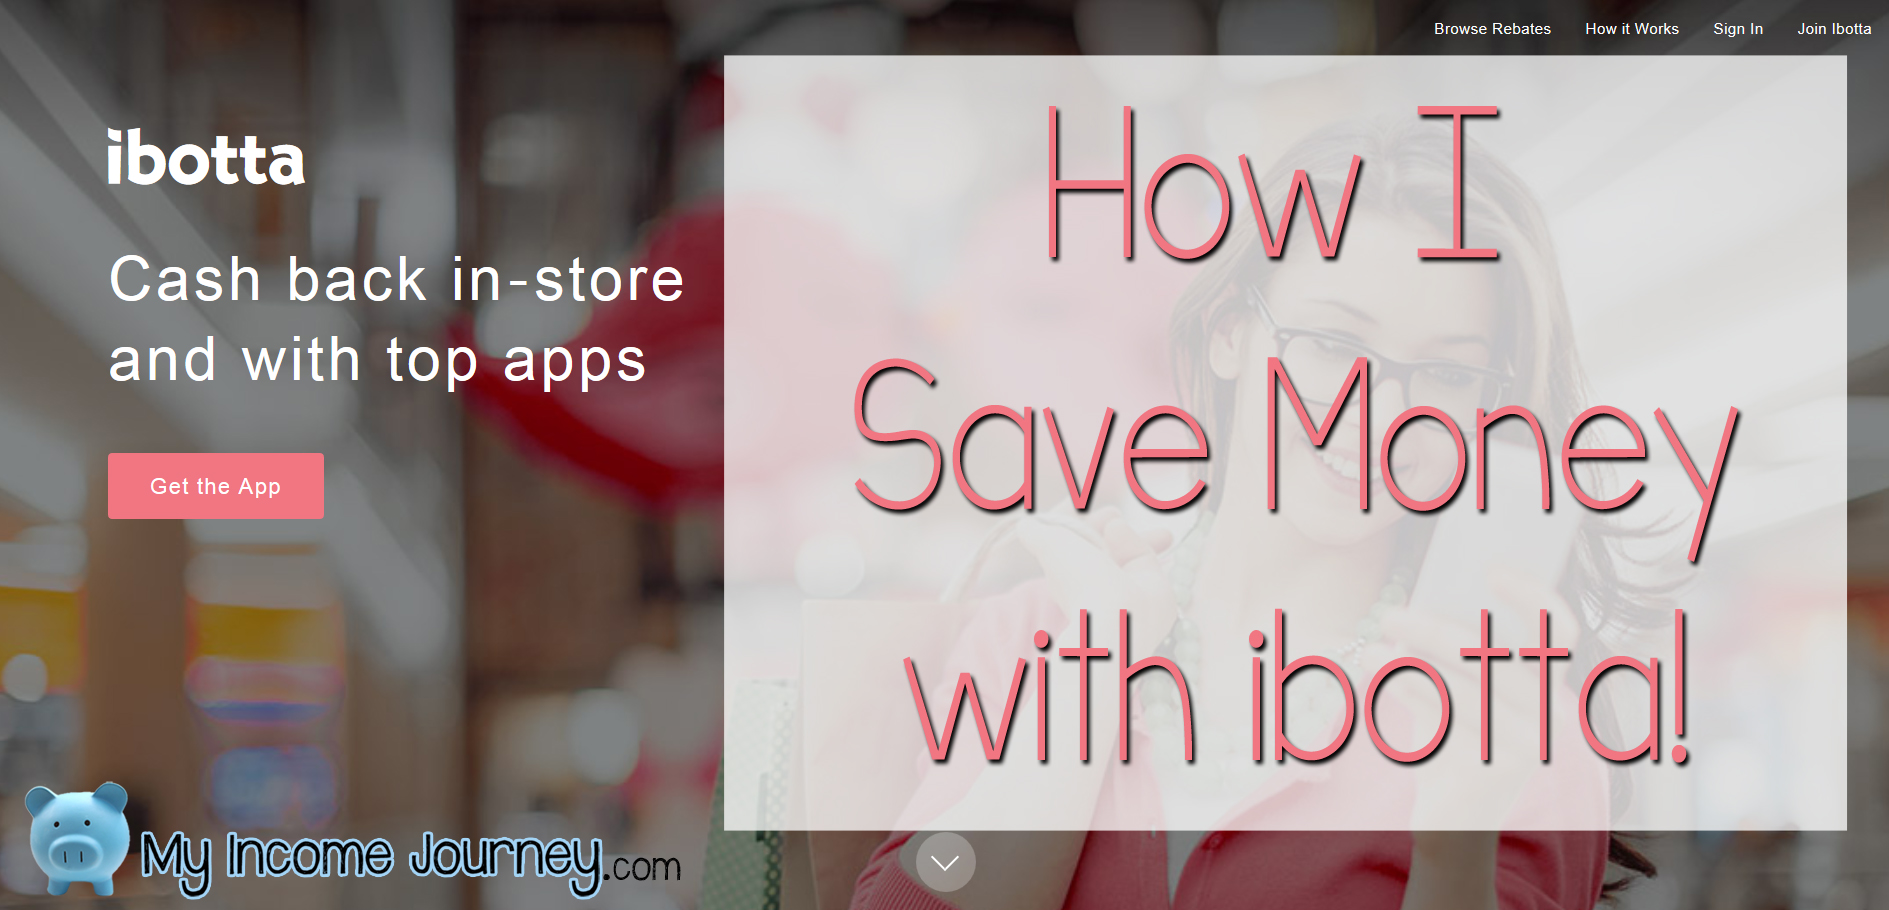 ibotta Review – How I Use ibotta to Save Money on Groceries